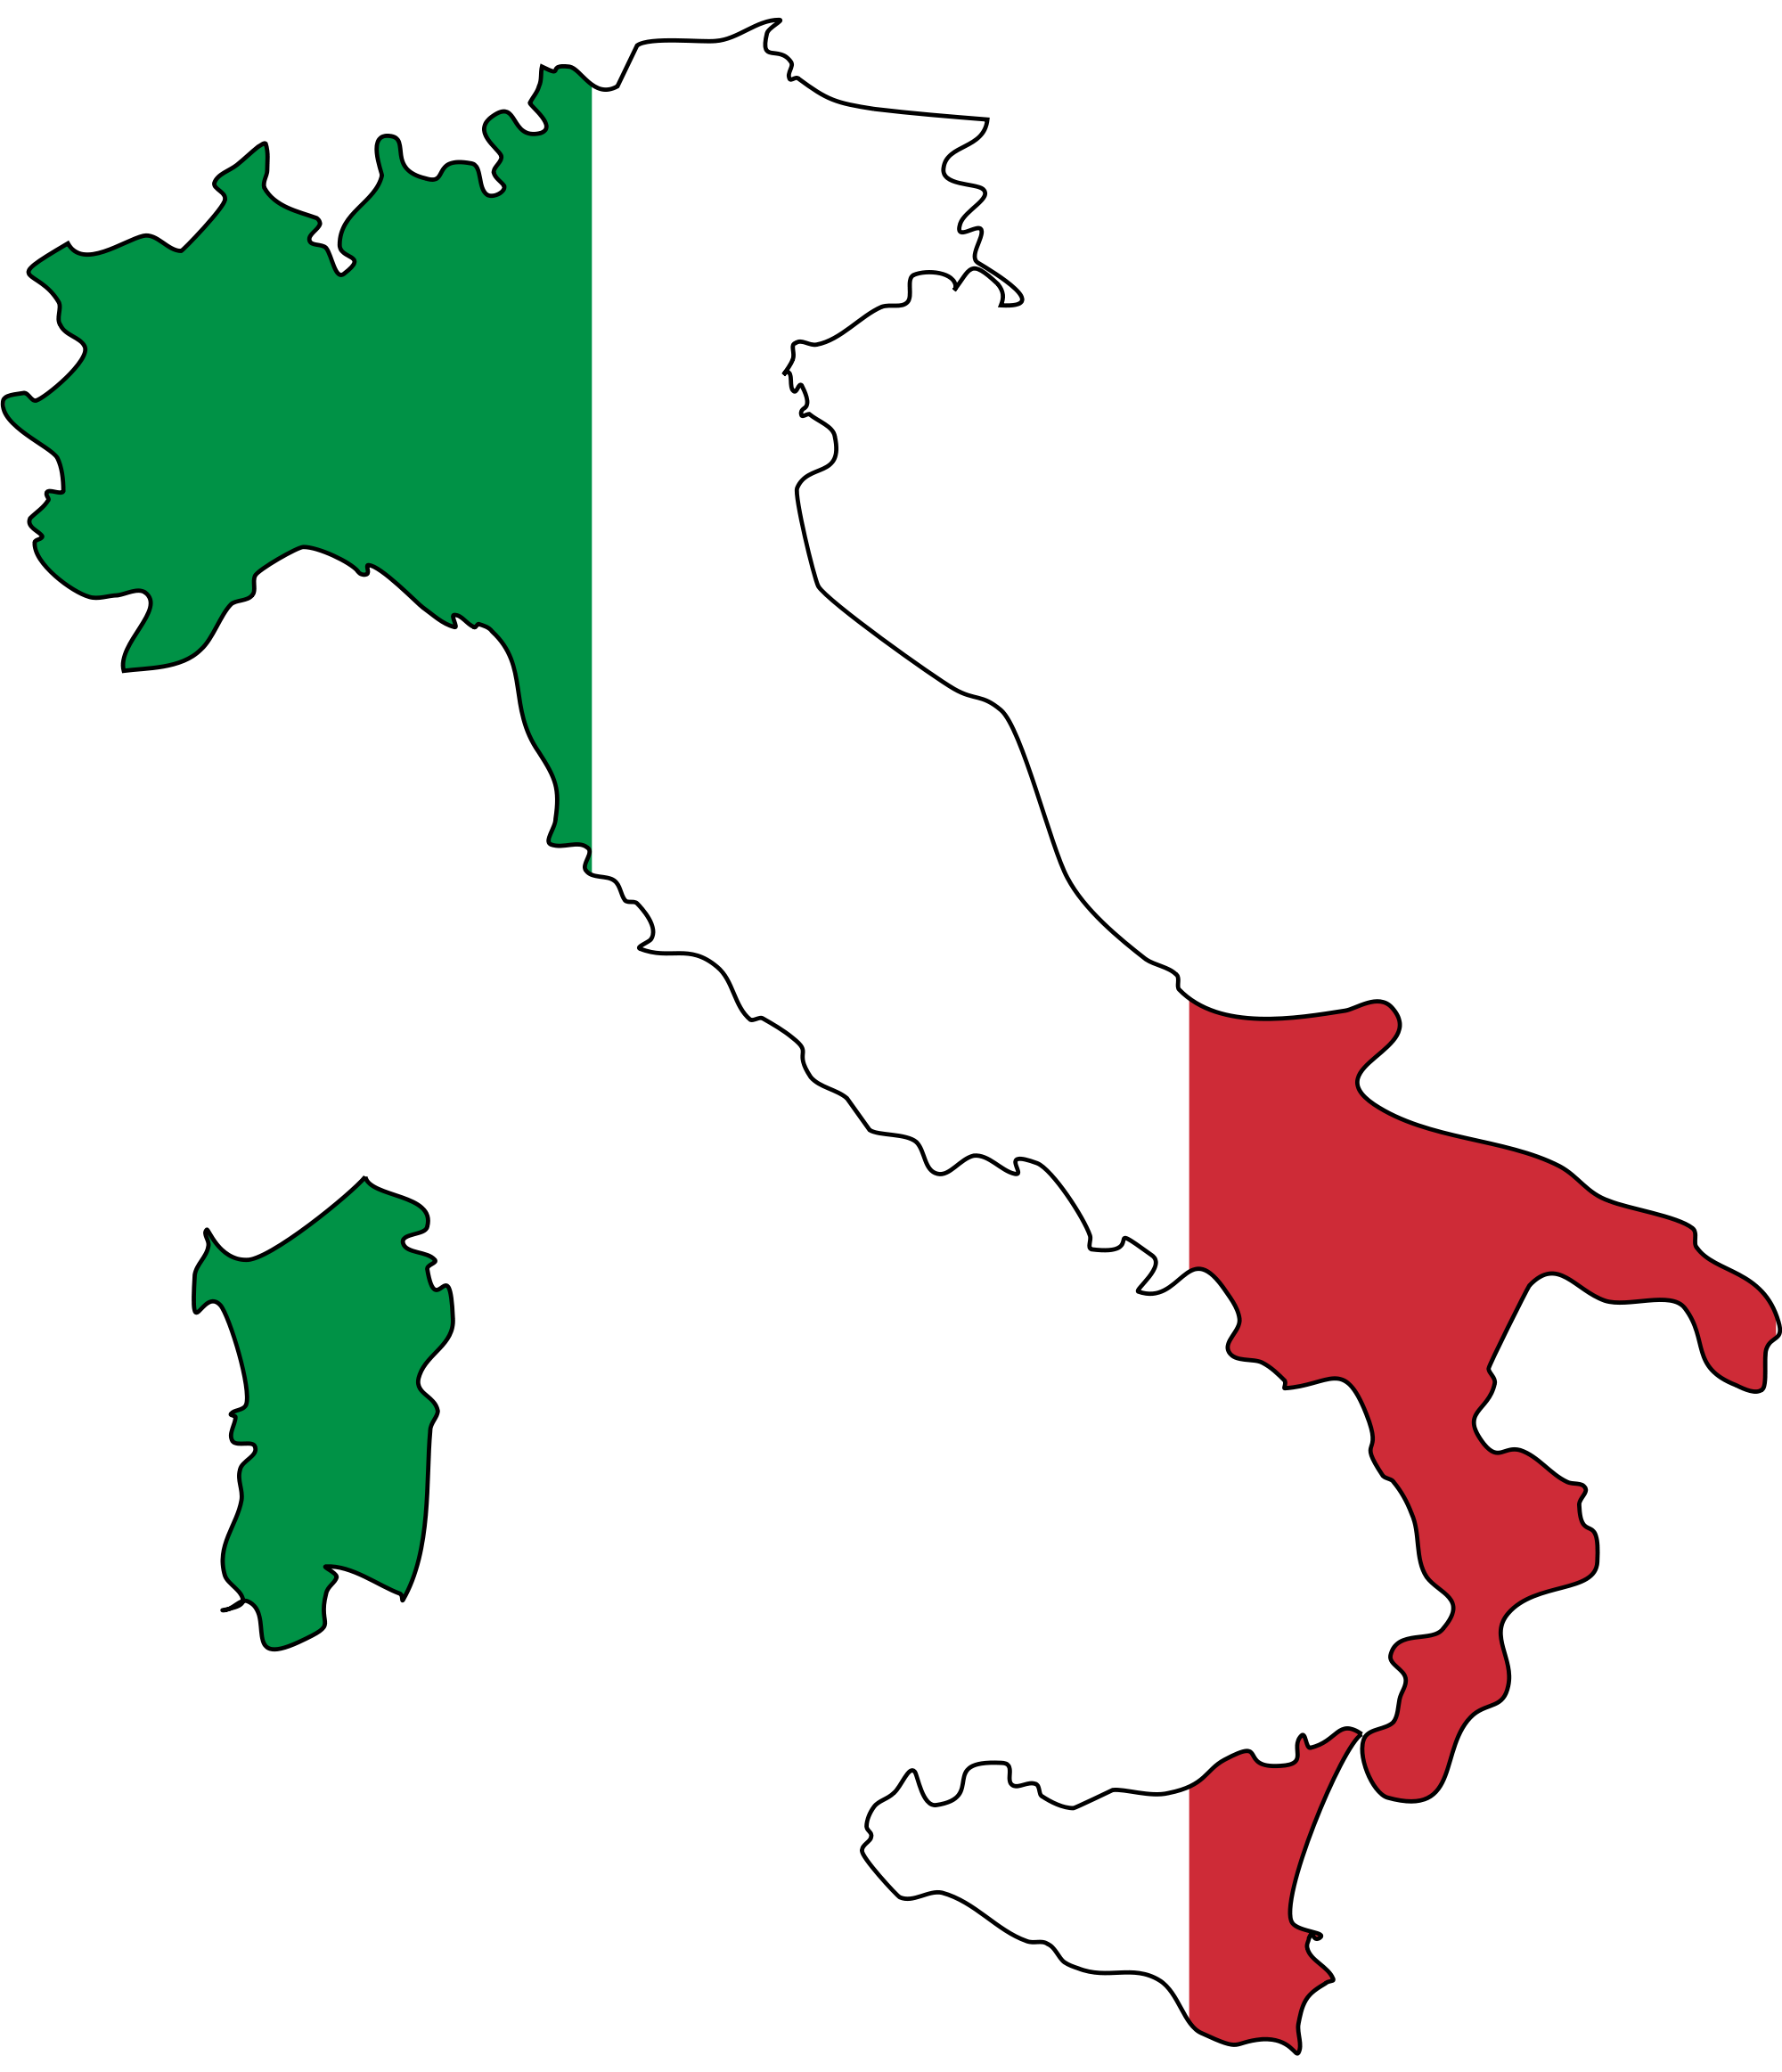 Rome clipart italy clipart. Powerpoint mash ie presentation